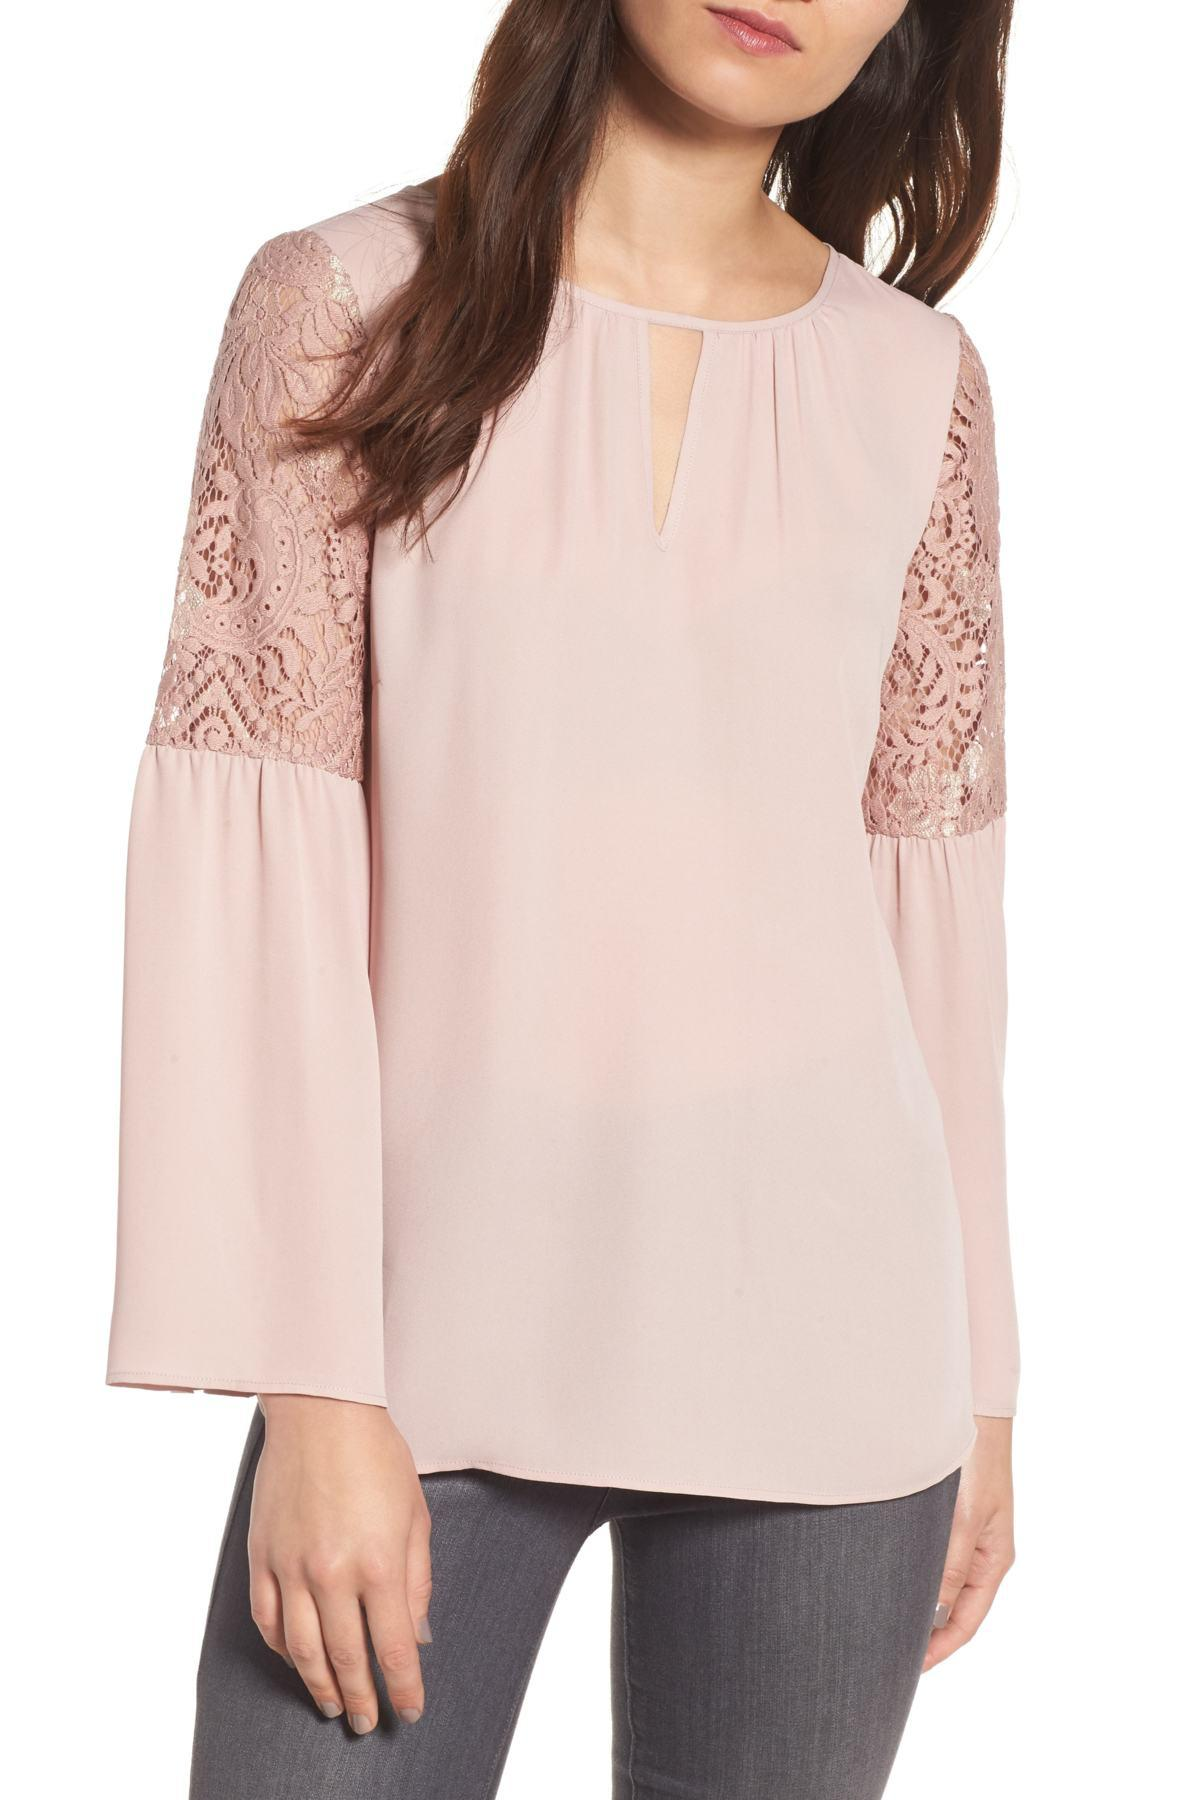 b05317b9aee0ae Lyst - Chelsea28 Lace Bell Sleeve Top in Pink